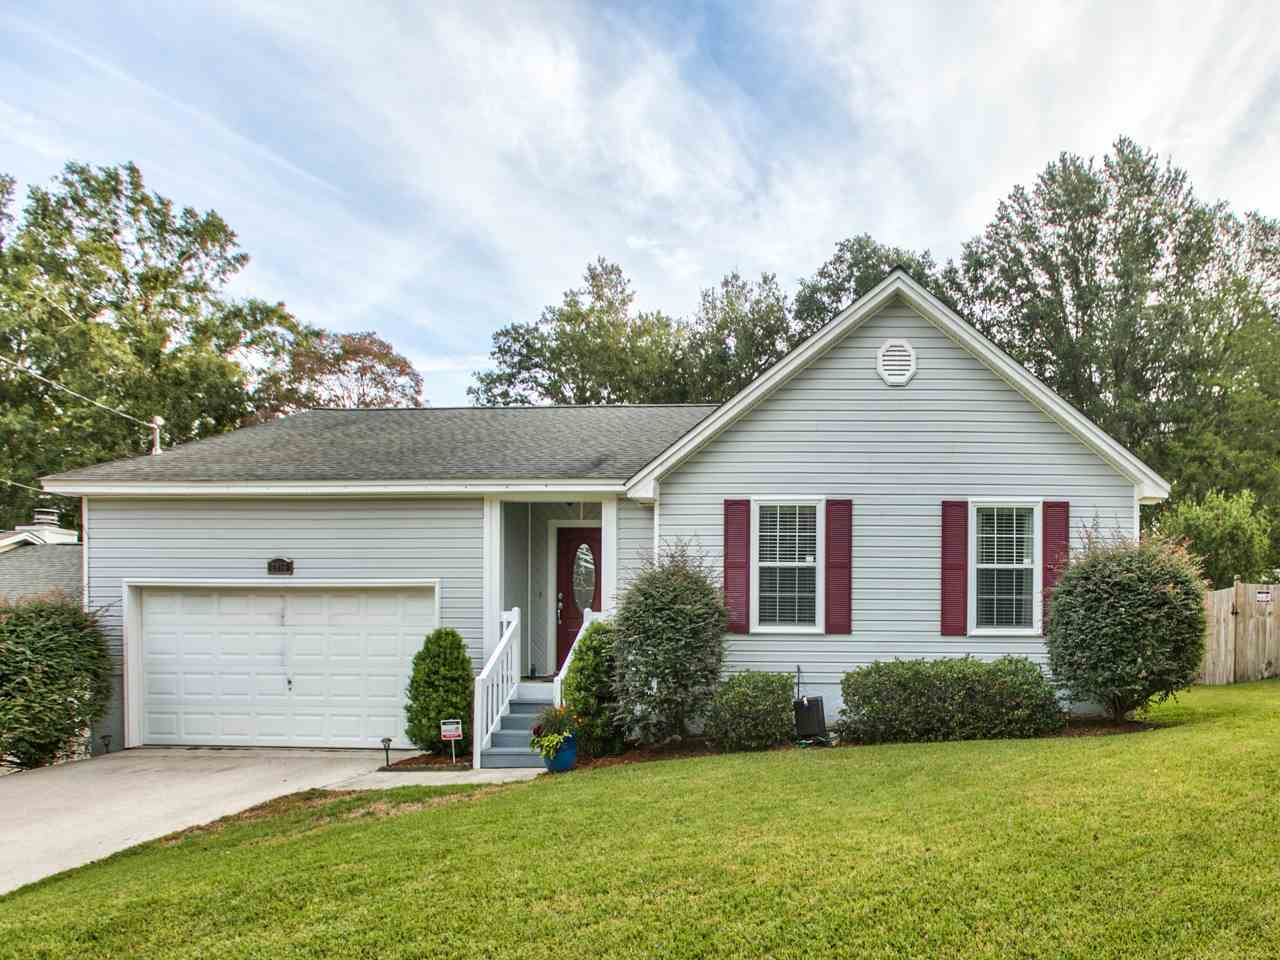 $229,000 - 3Br/2Ba -  for Sale in Melody Hill Cluster, Tallahassee